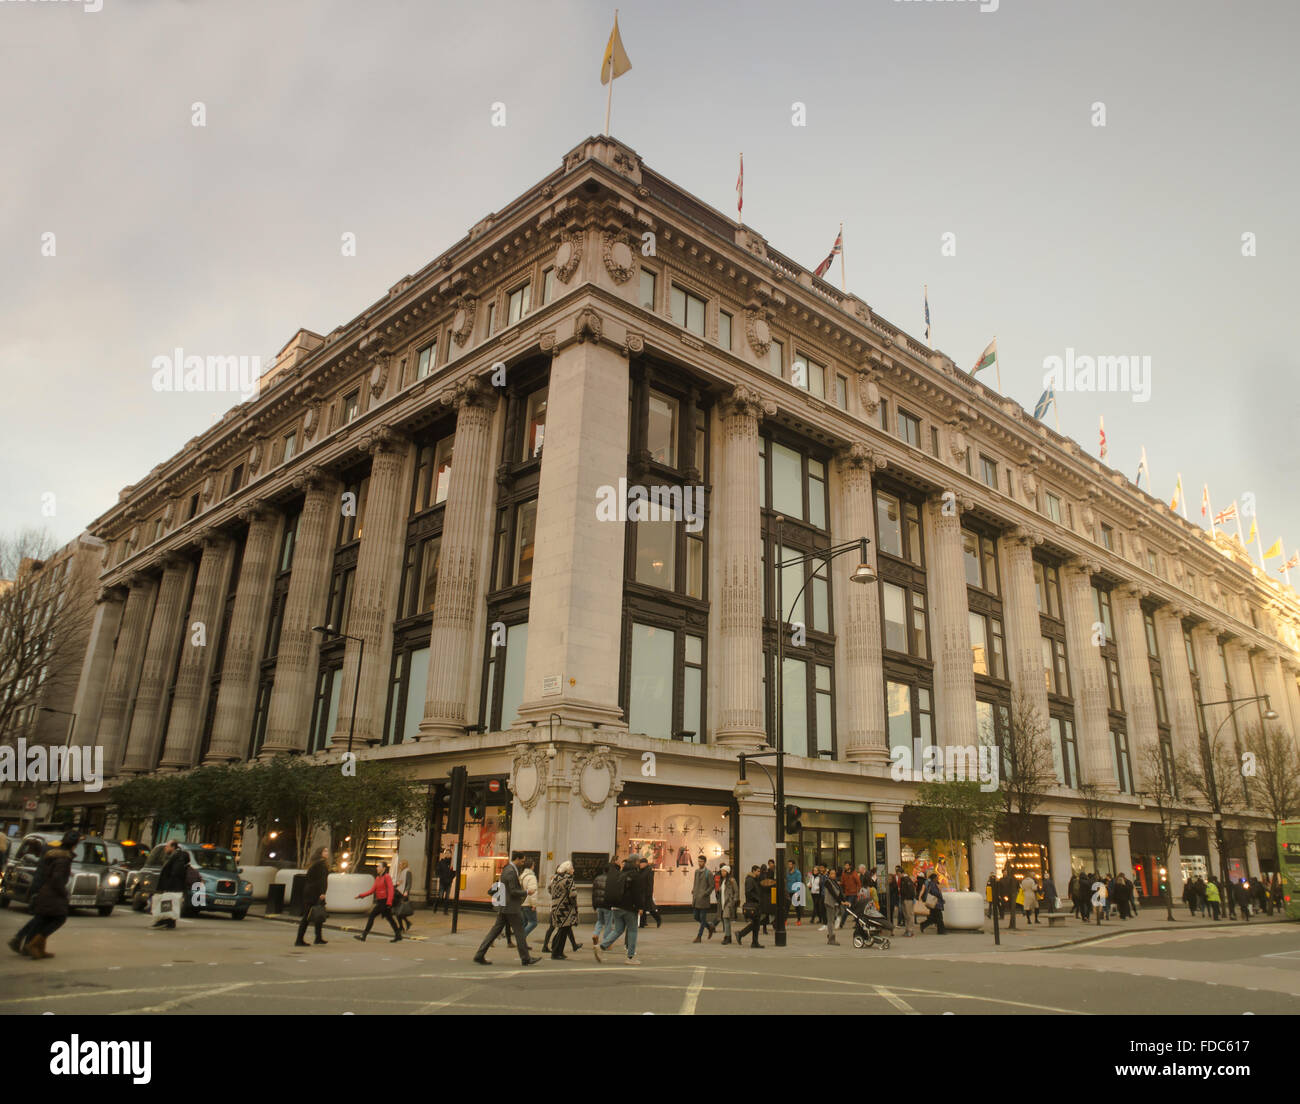 Selfridges department store viewed from Oxford Street at the intersection with Orchard Street. Central London, UK. - Stock Image